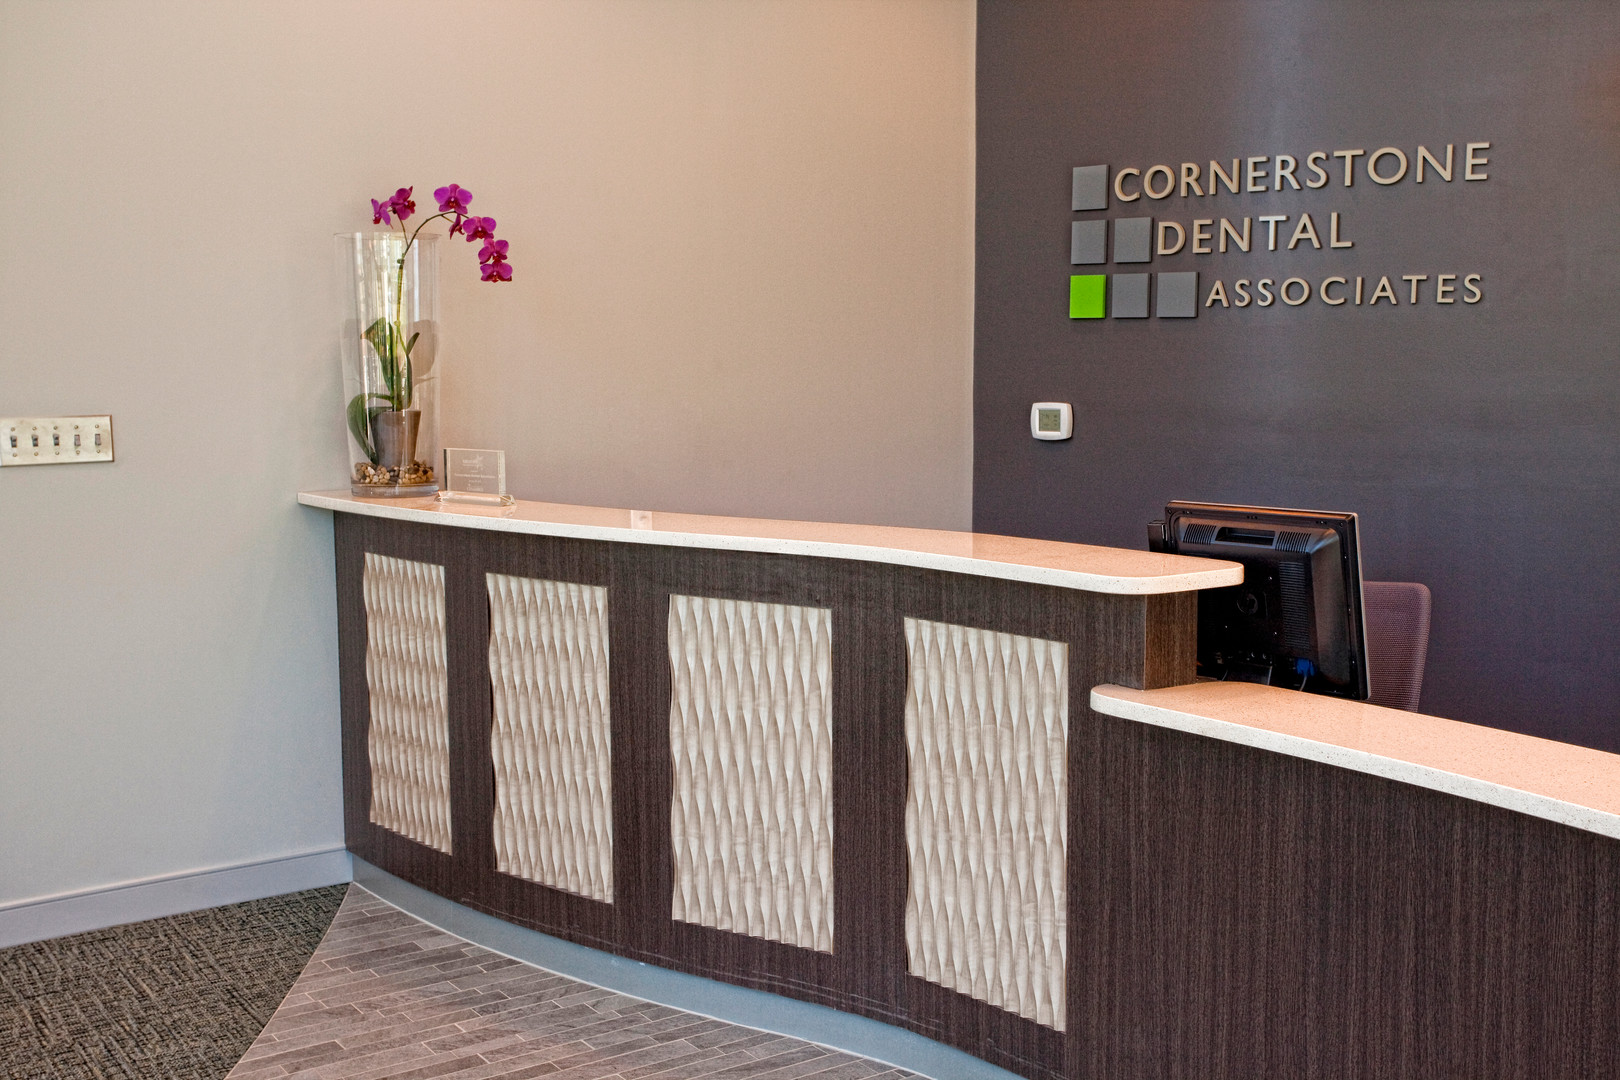 CORNERSTONE DENTAL ASSOCIATES 17